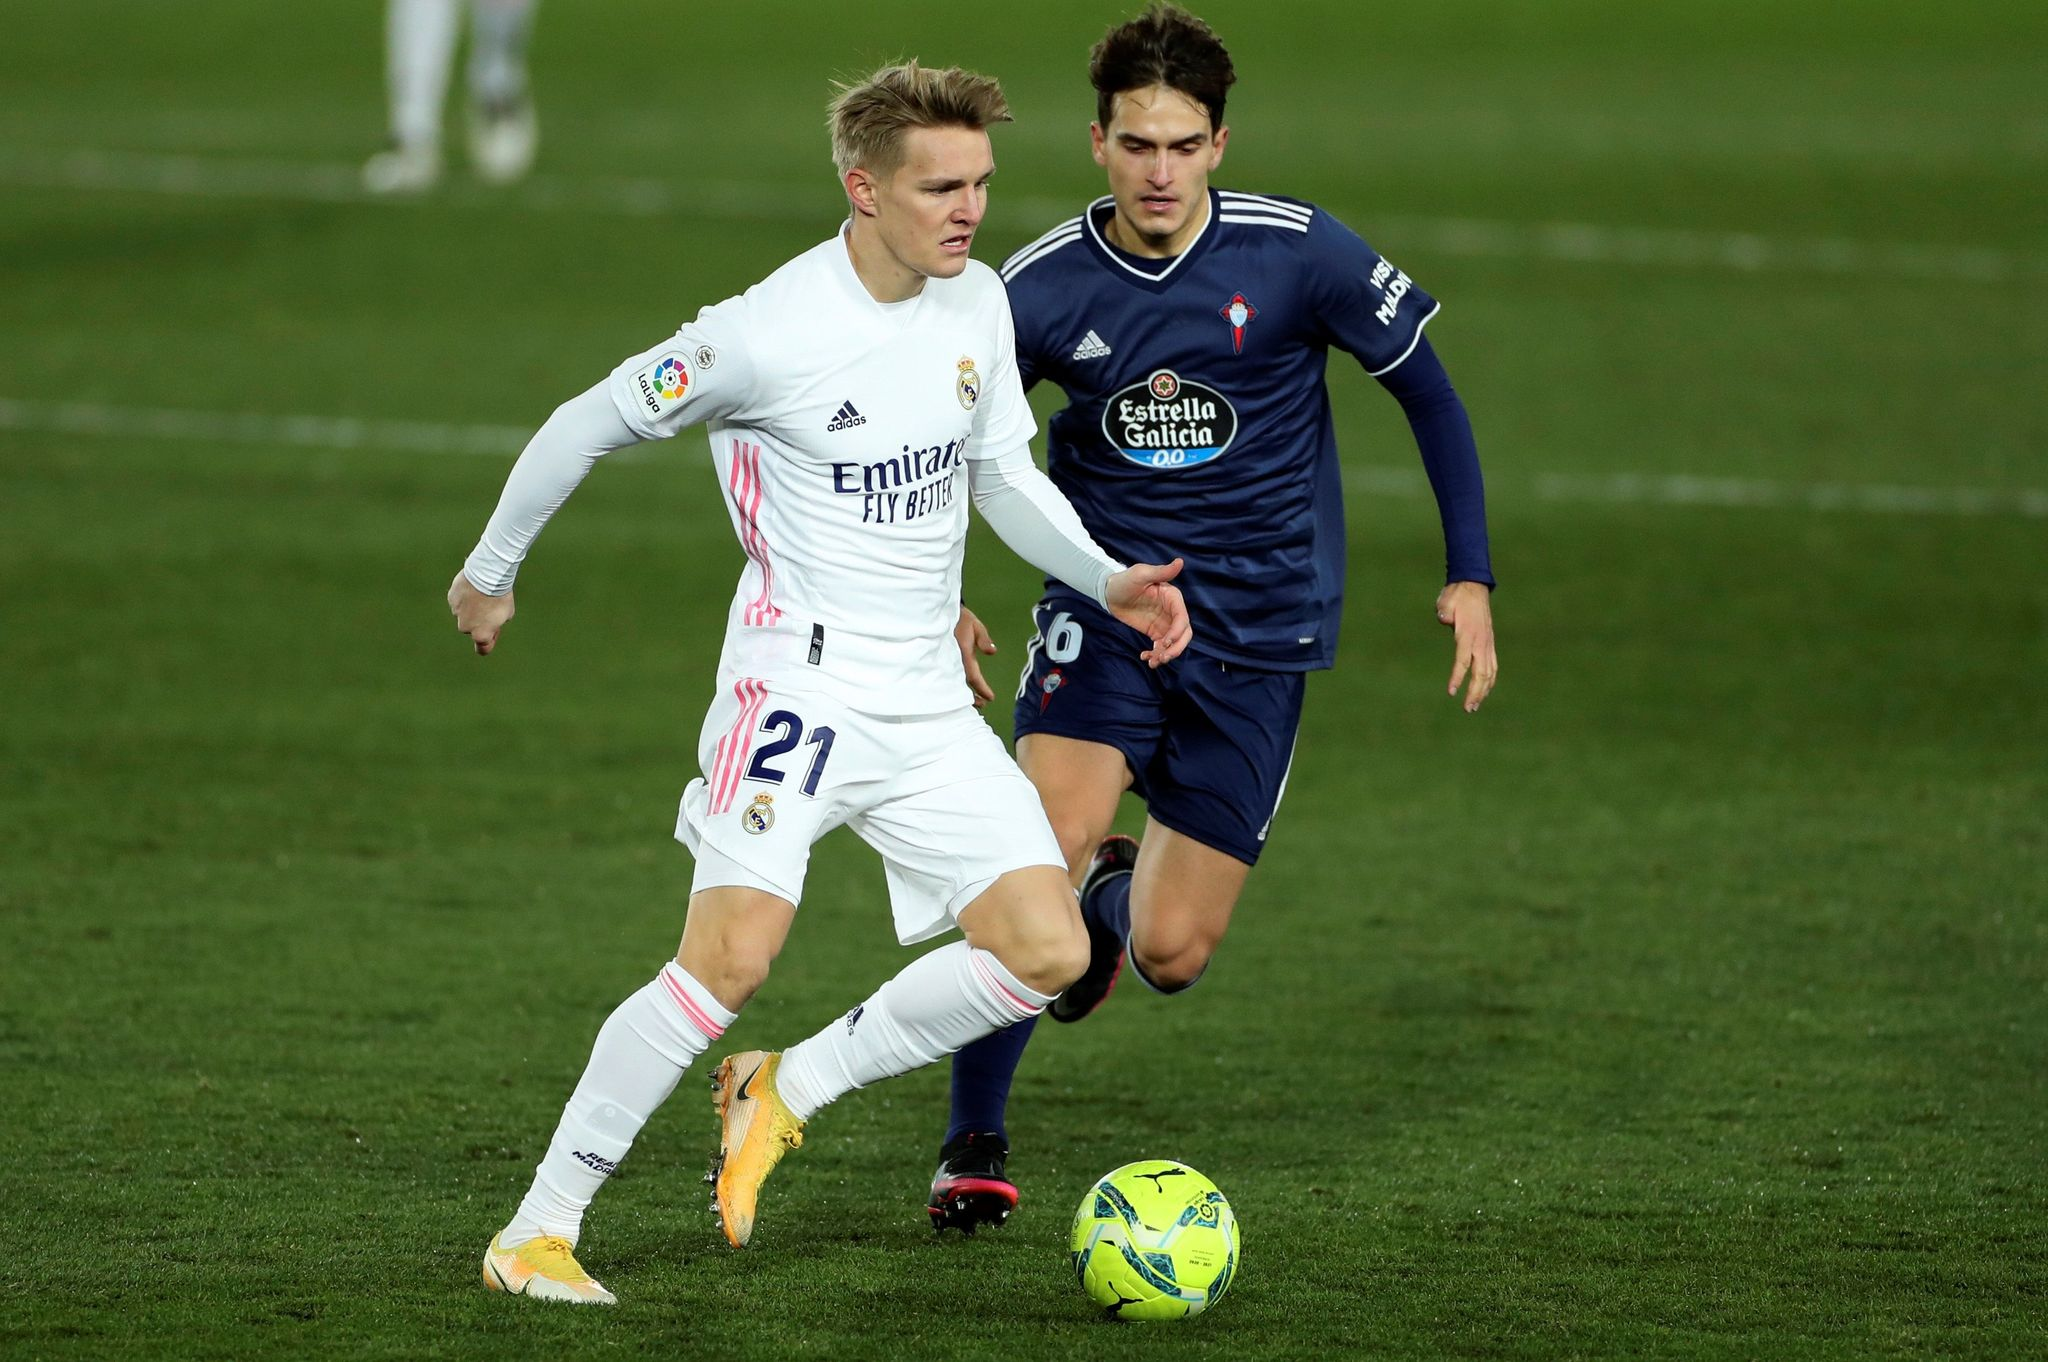 Odegaard left out in the cold: Why has Zidane forgotten about him?